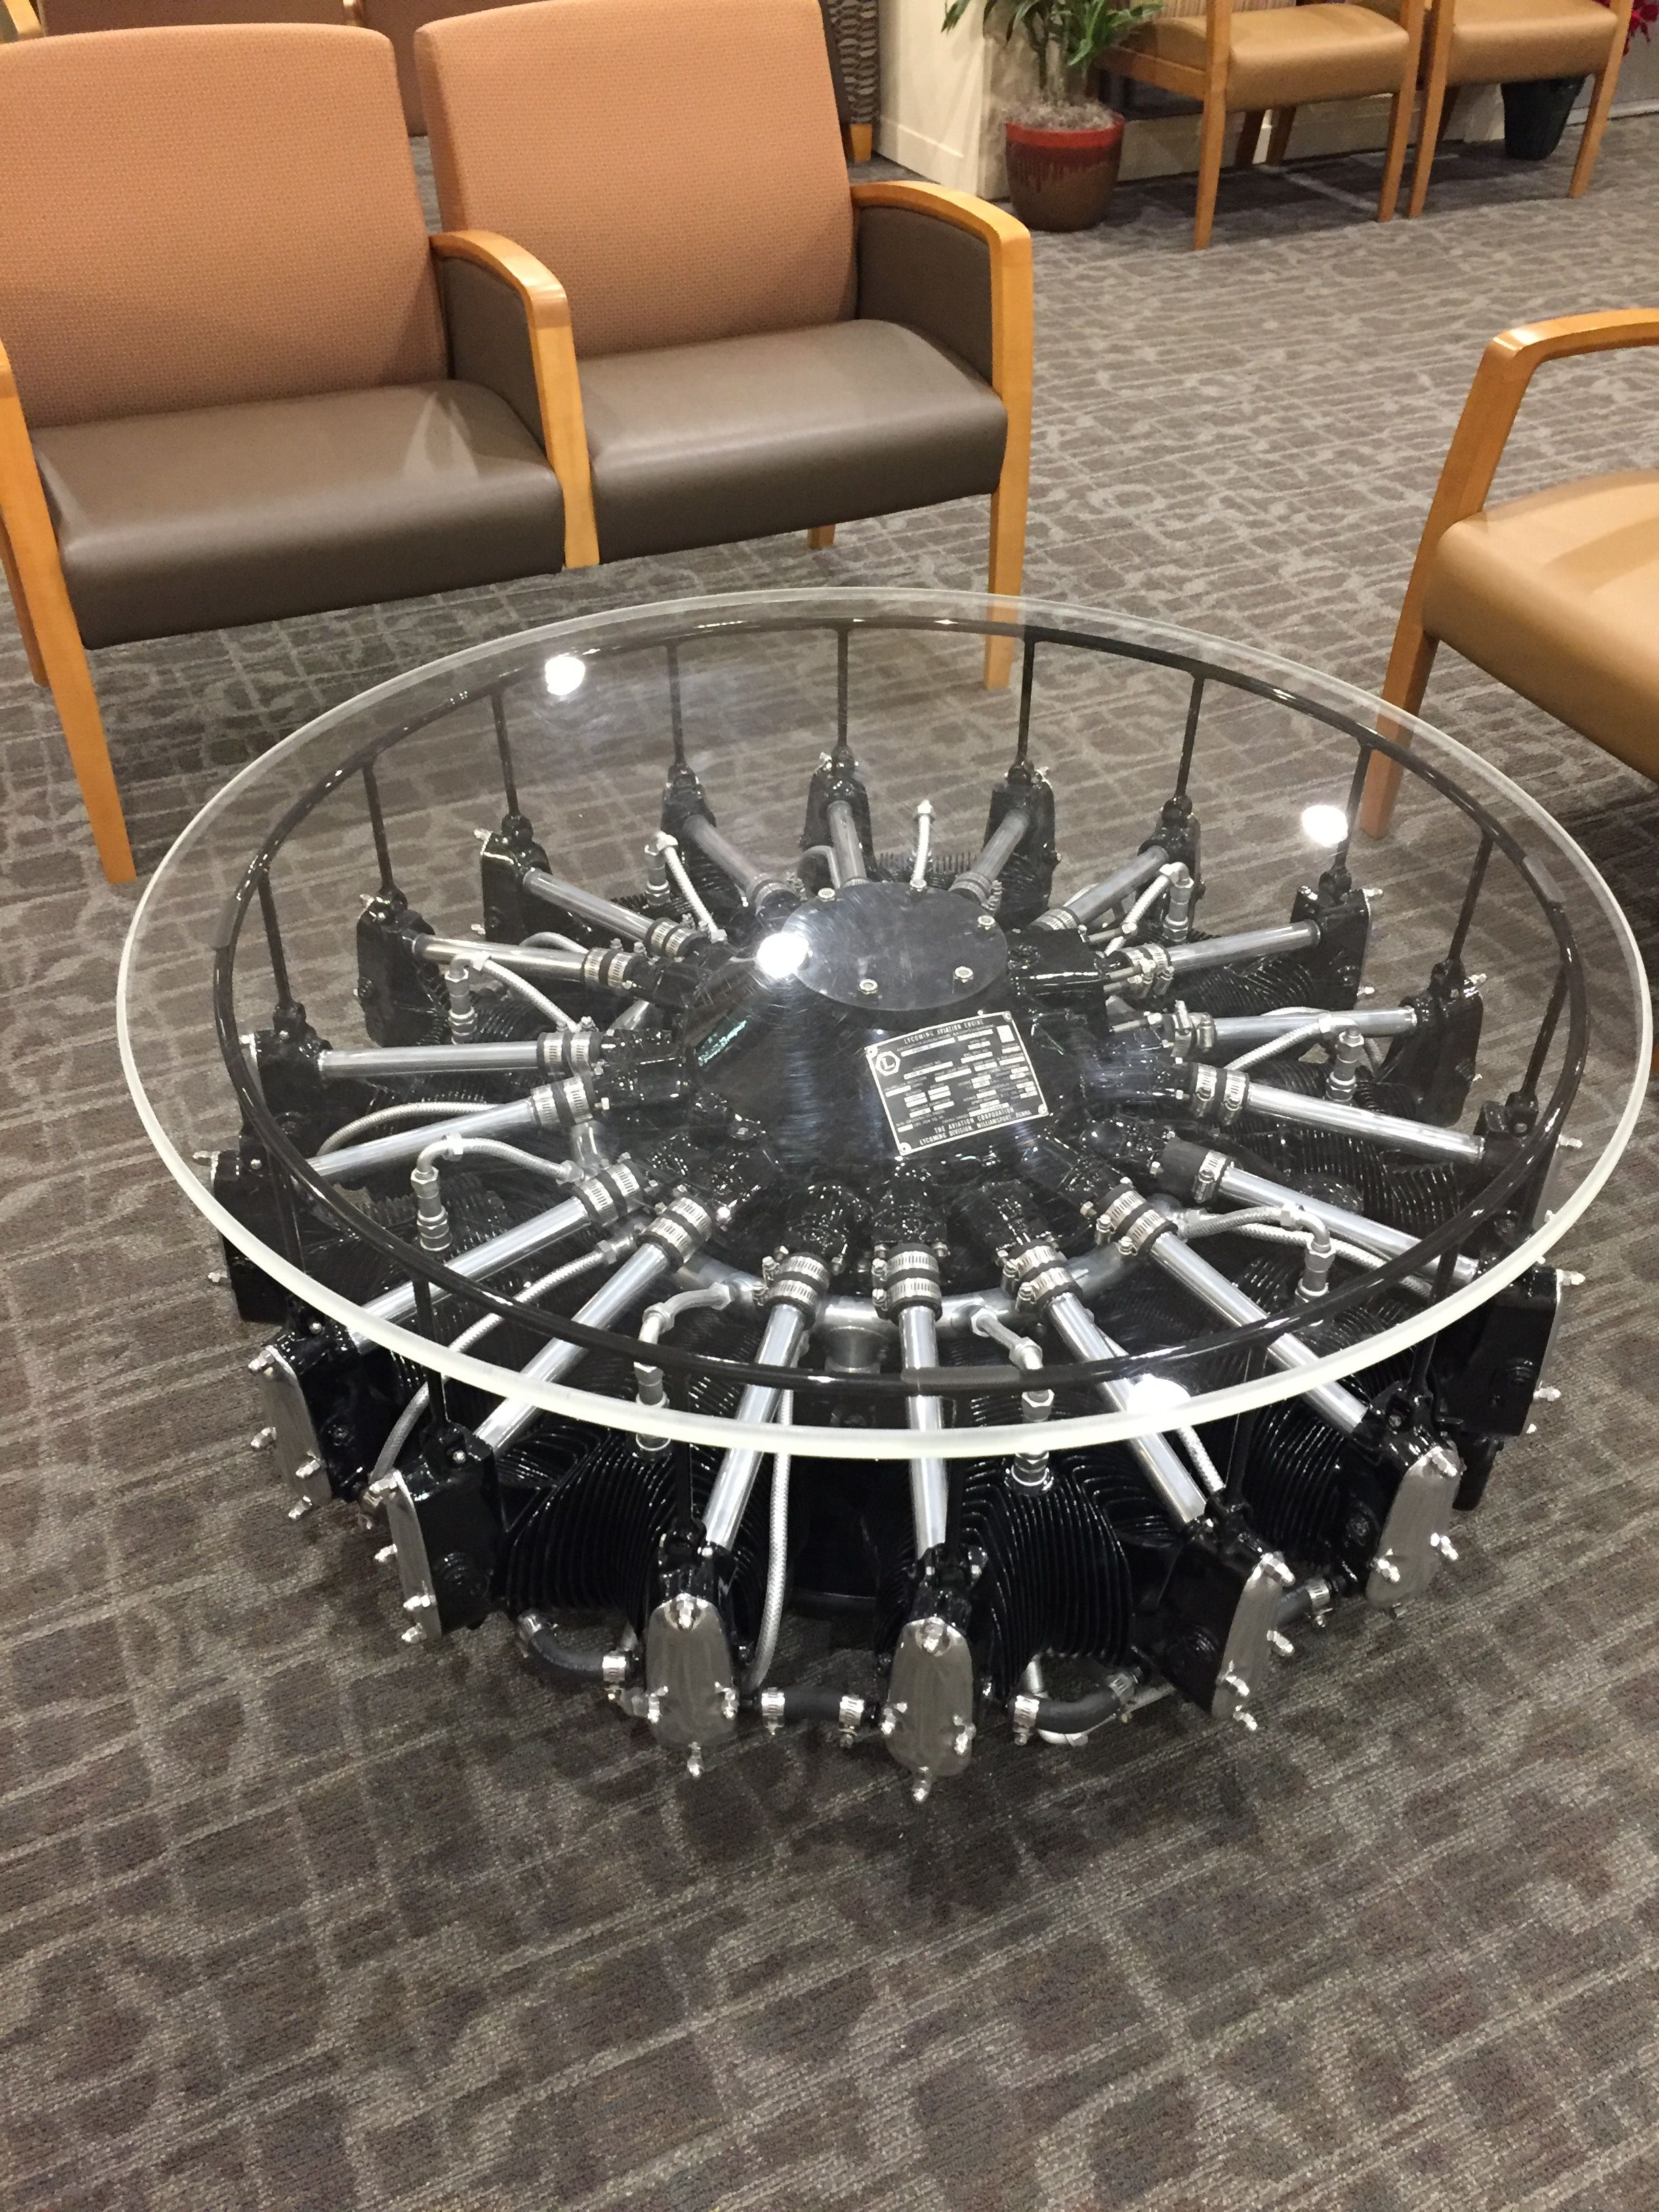 Radial Engine Coffee Table Mebel Velosiped